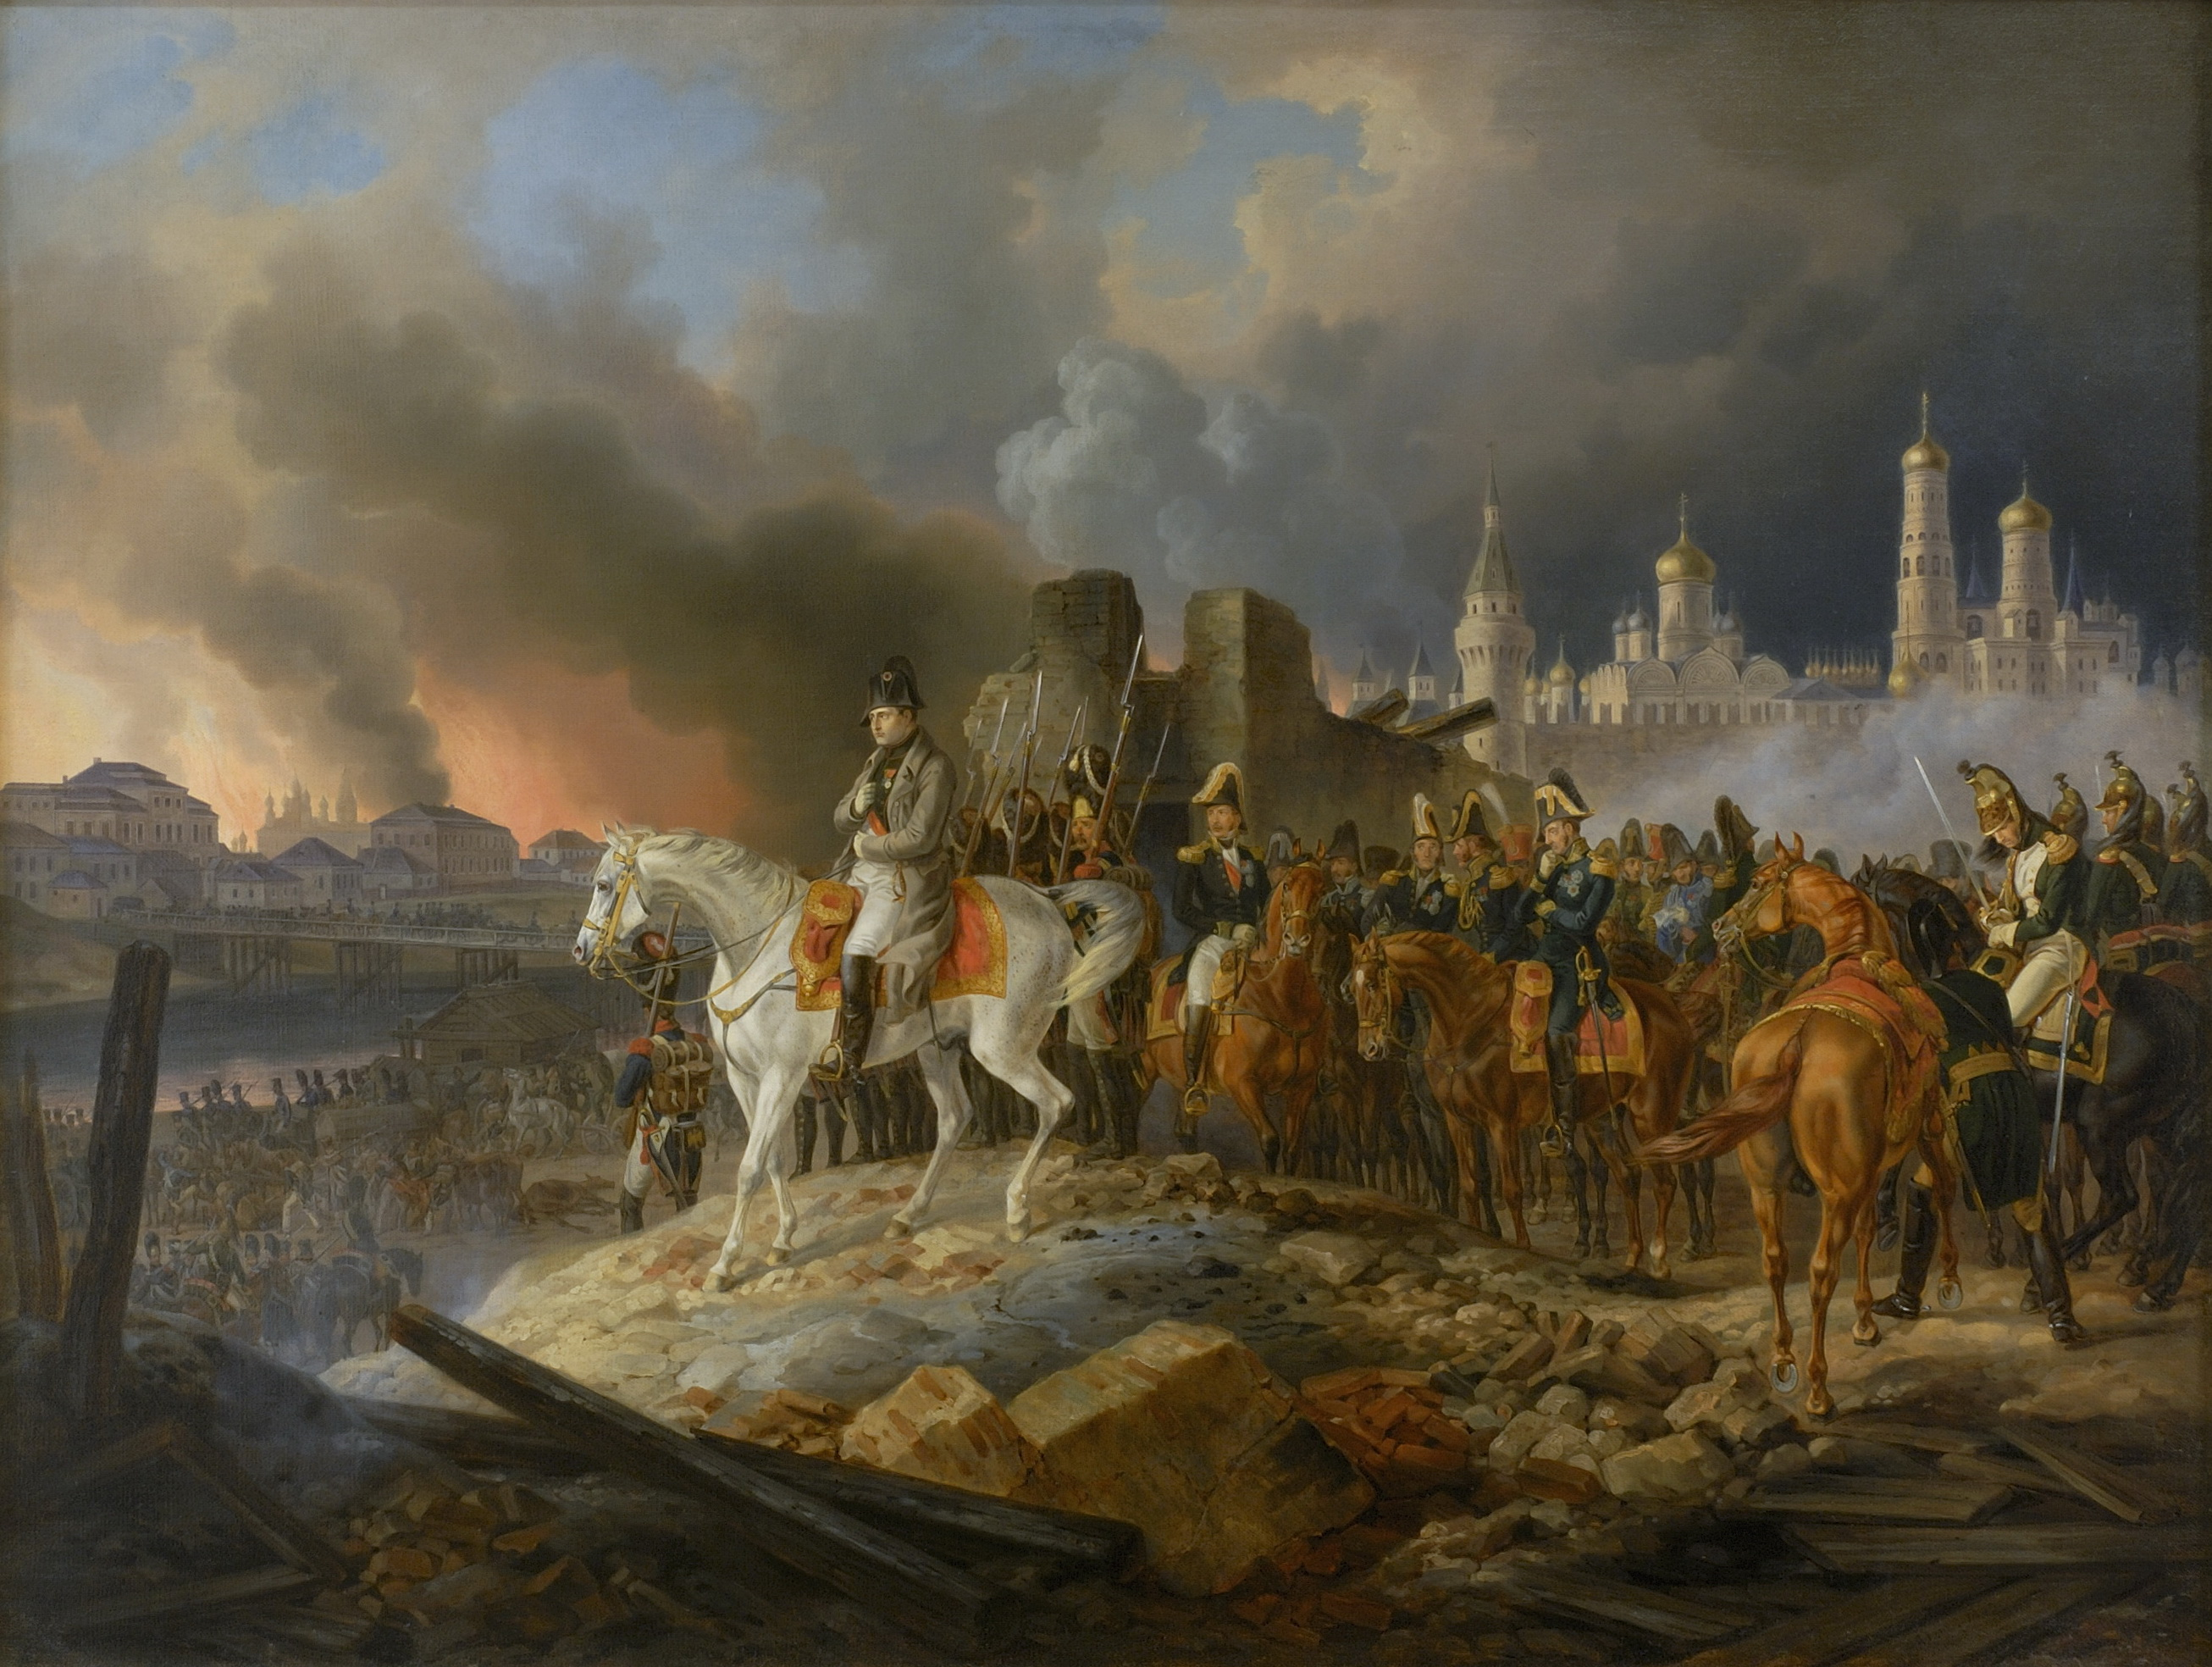 https://upload.wikimedia.org/wikipedia/commons/5/53/Napoleon_in_burning_Moscow_-_Adam_Albrecht_%281841%29.jpg